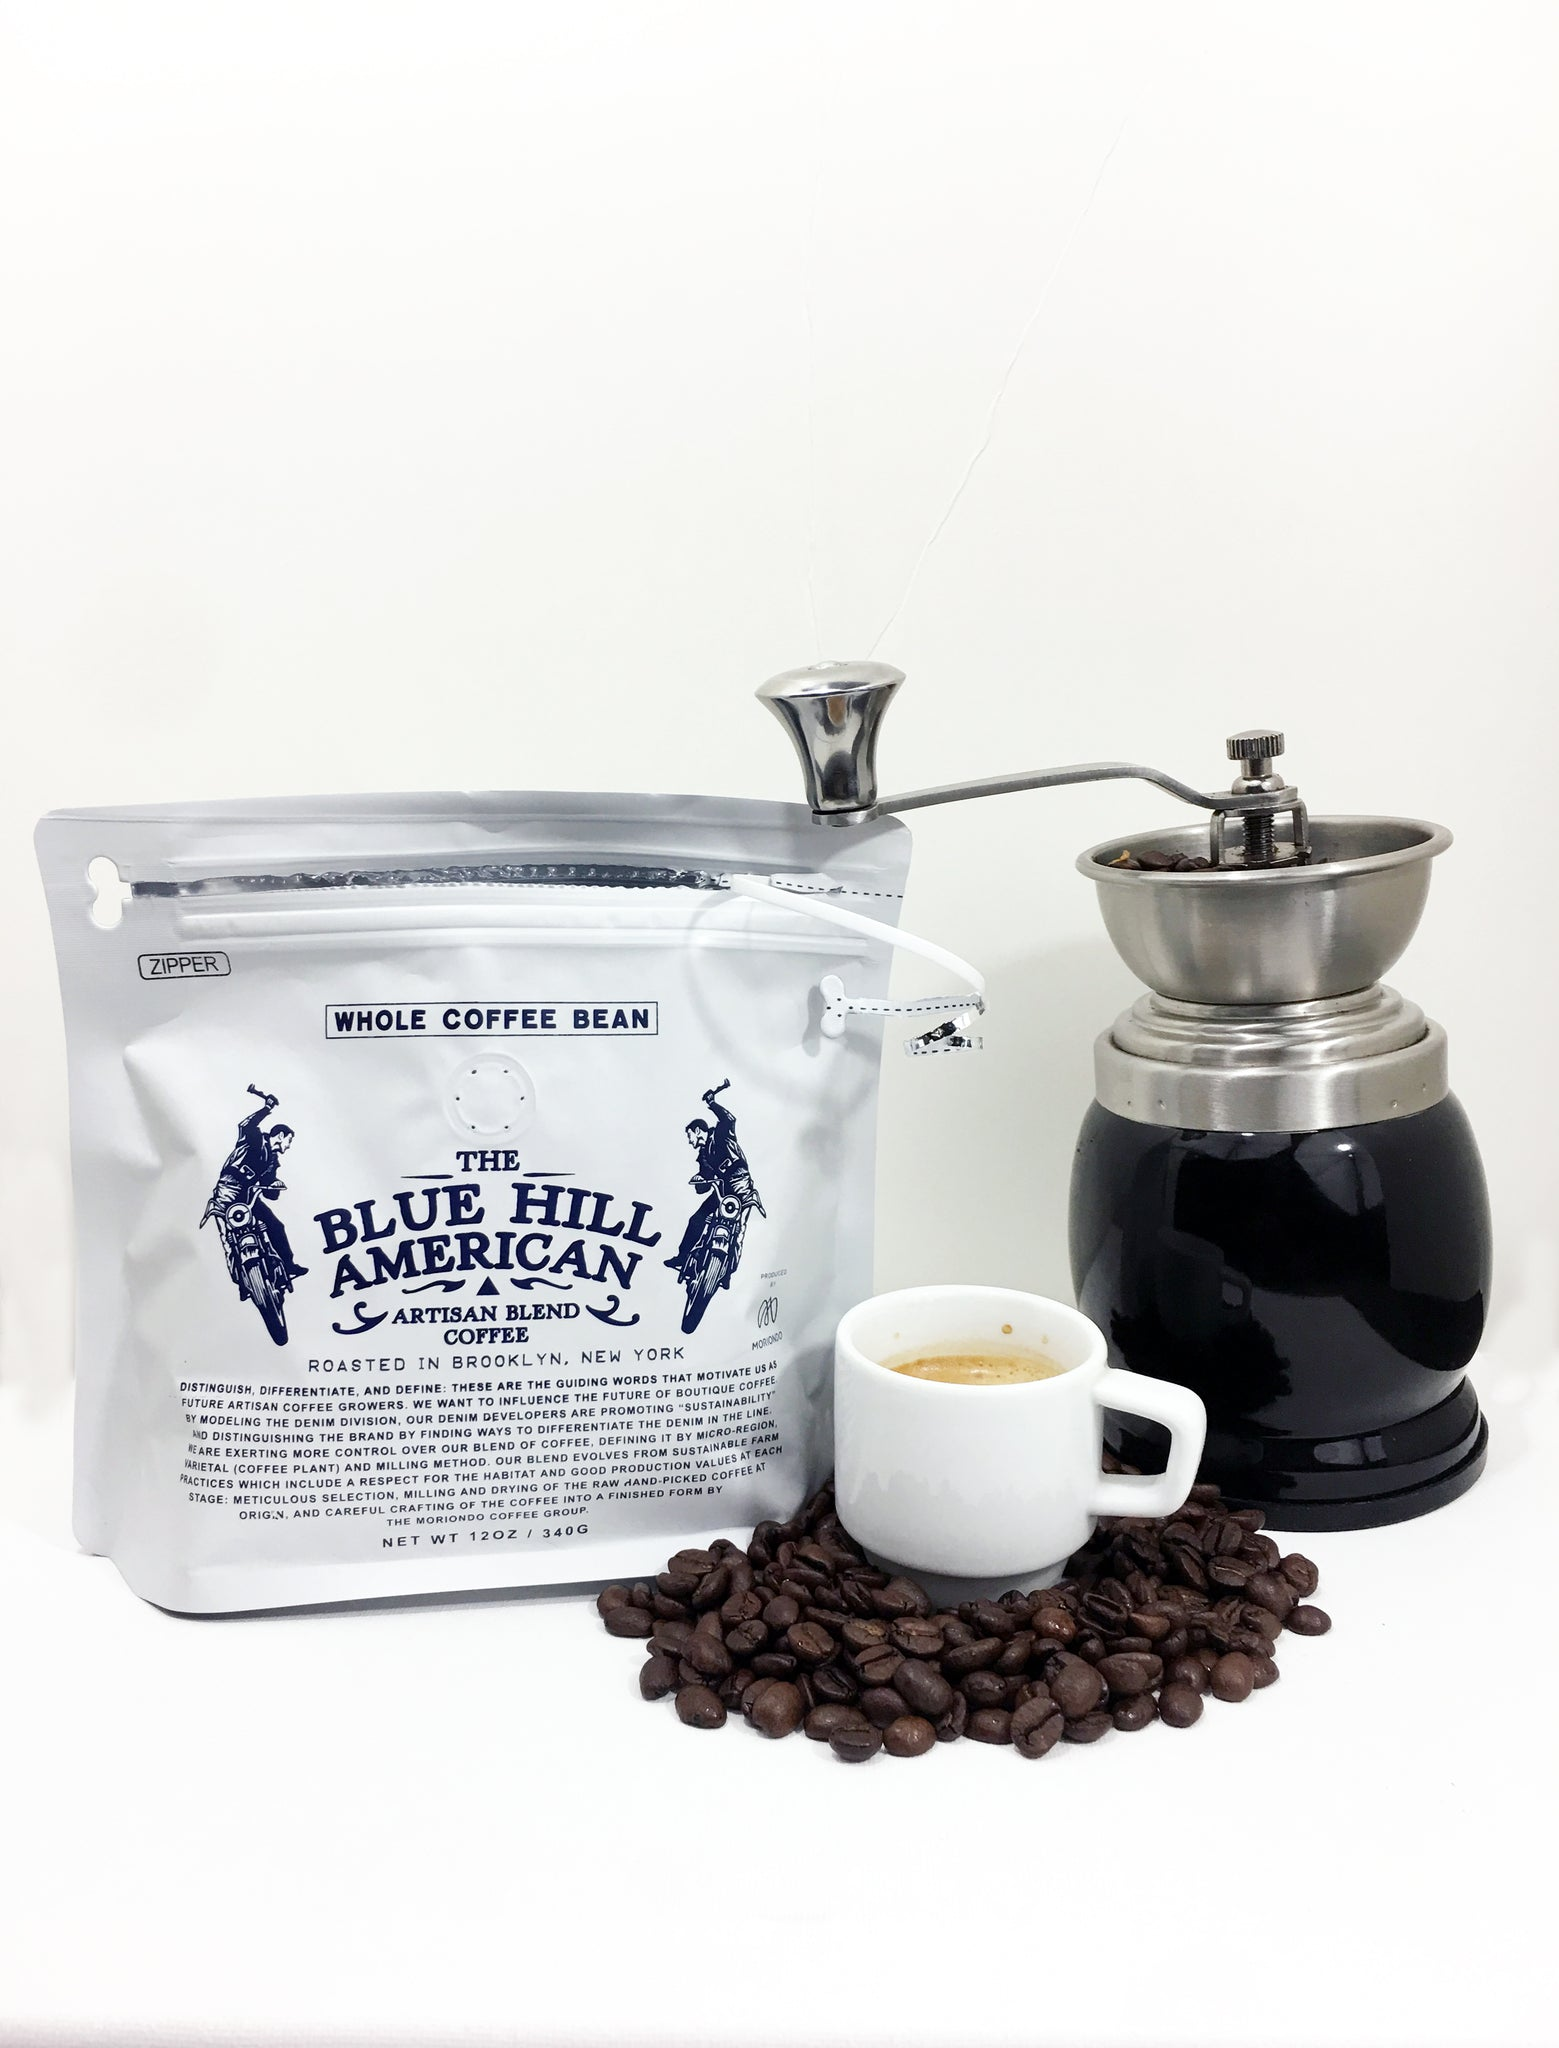 The Blue Hill American Artisan Blend Coffee - The Blue Hill American Denim Company.